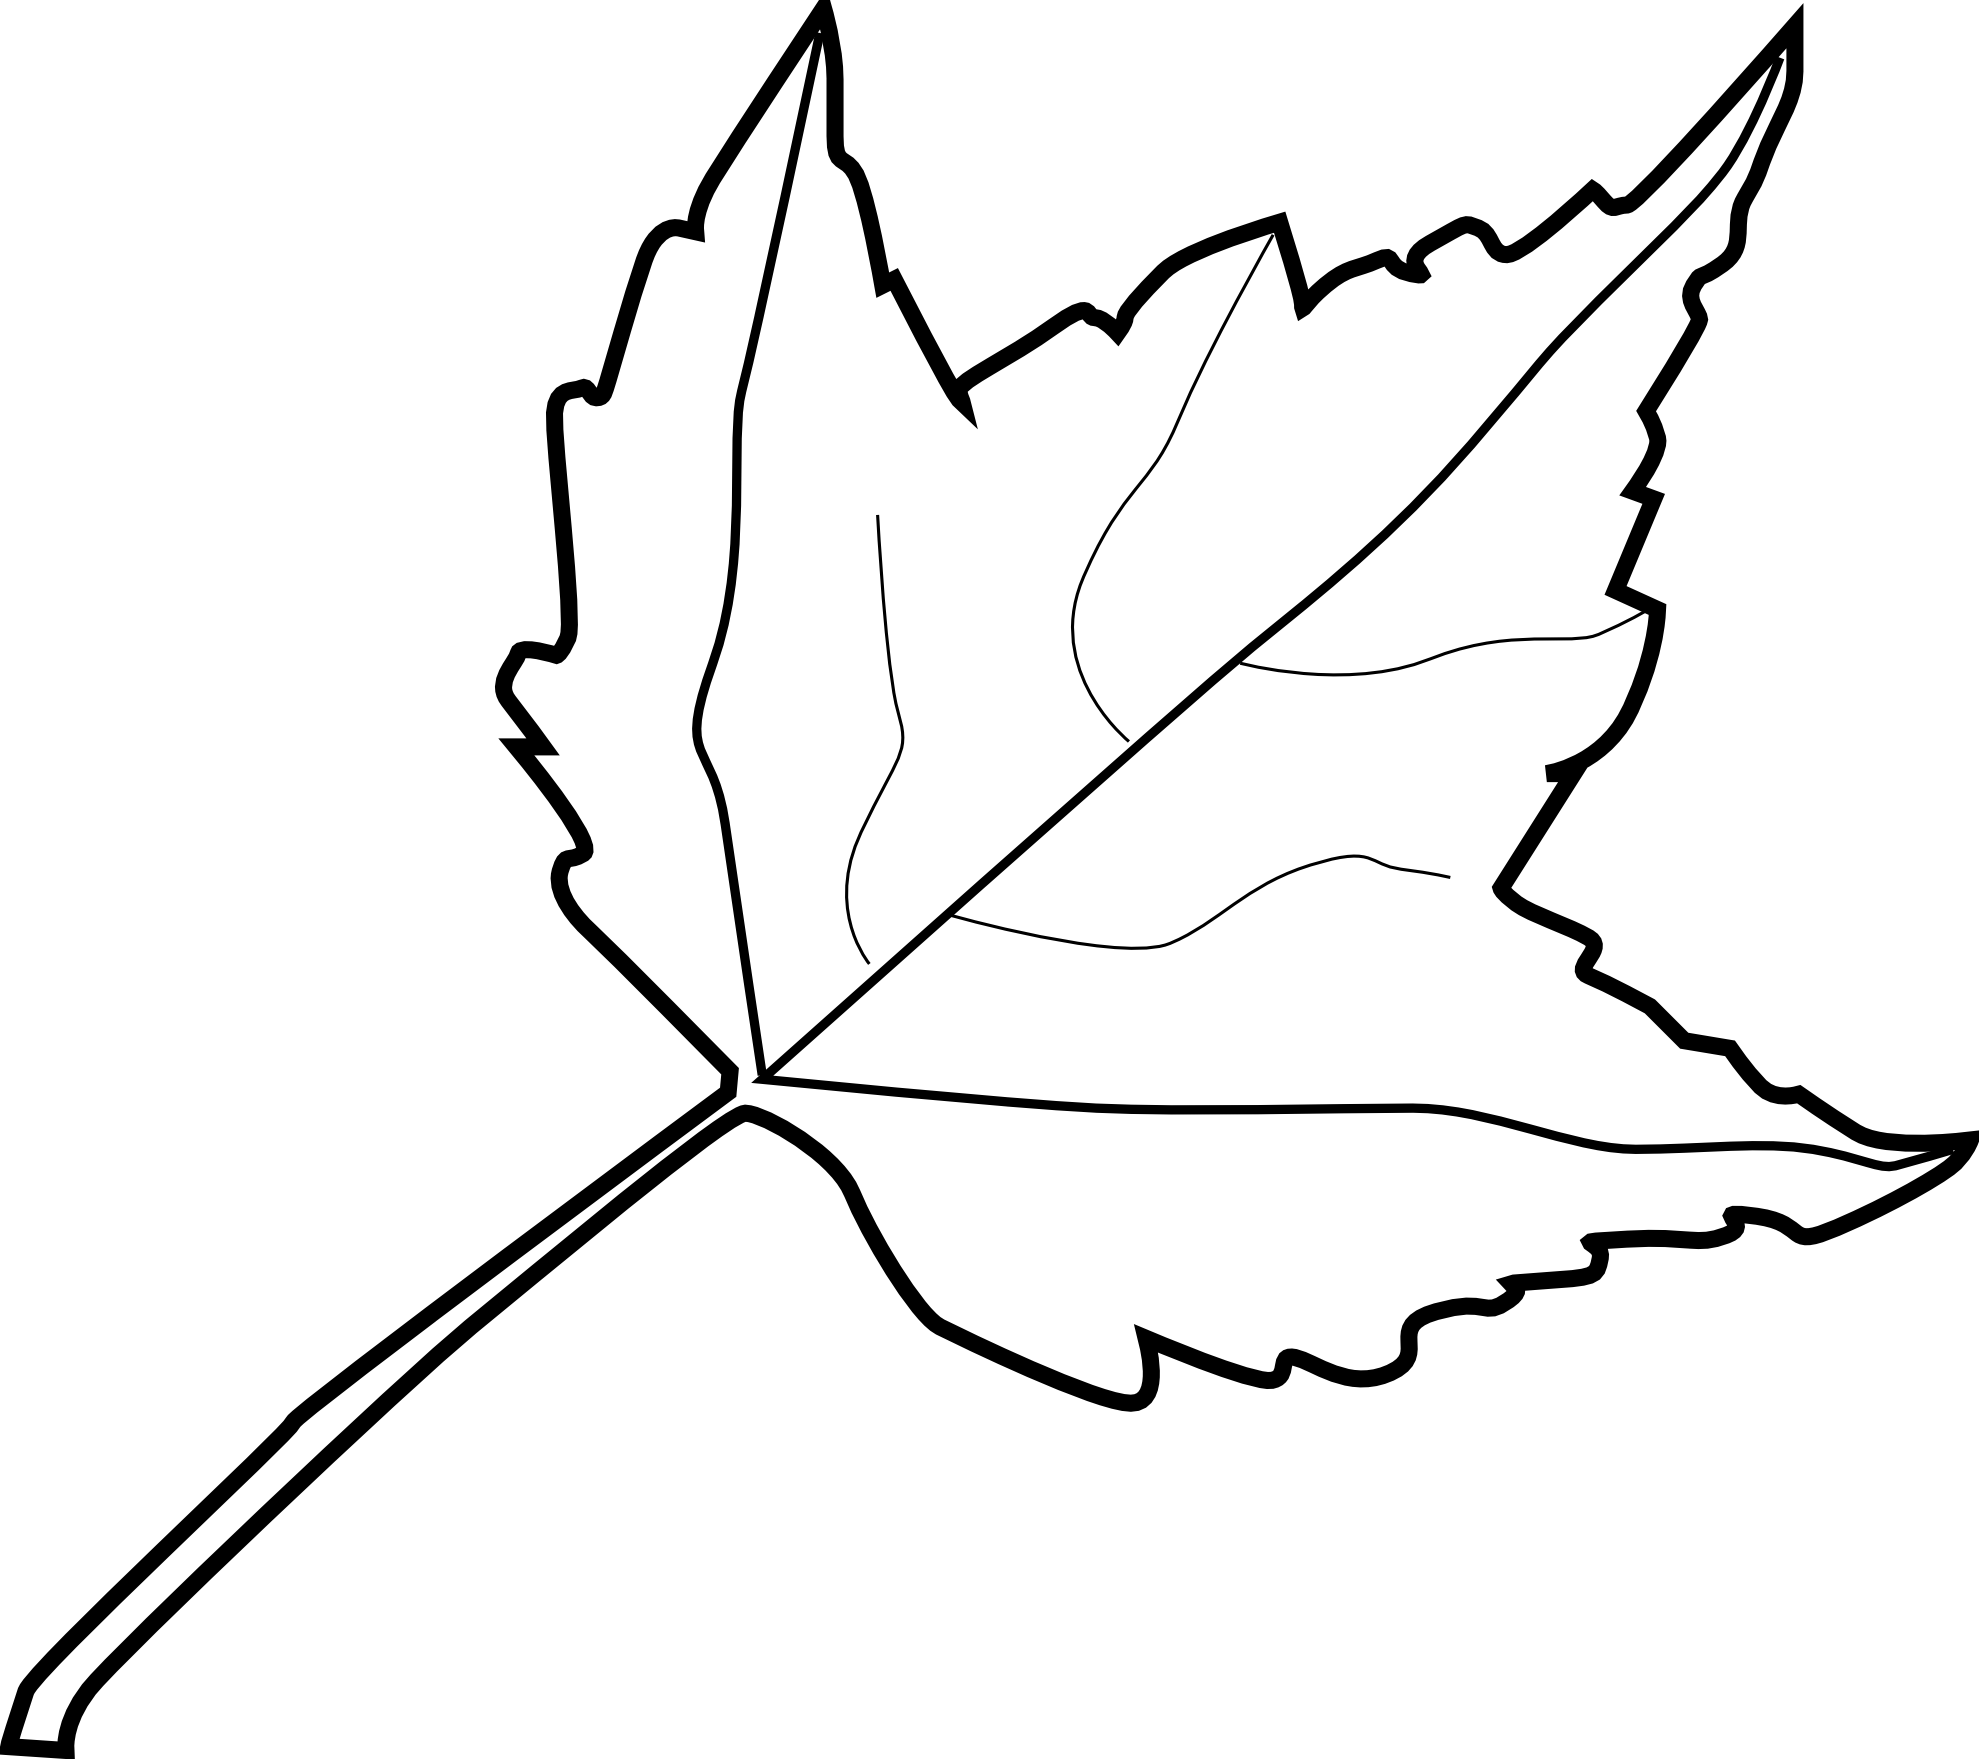 Zzve Line Art : Line drawing leaf clipart best